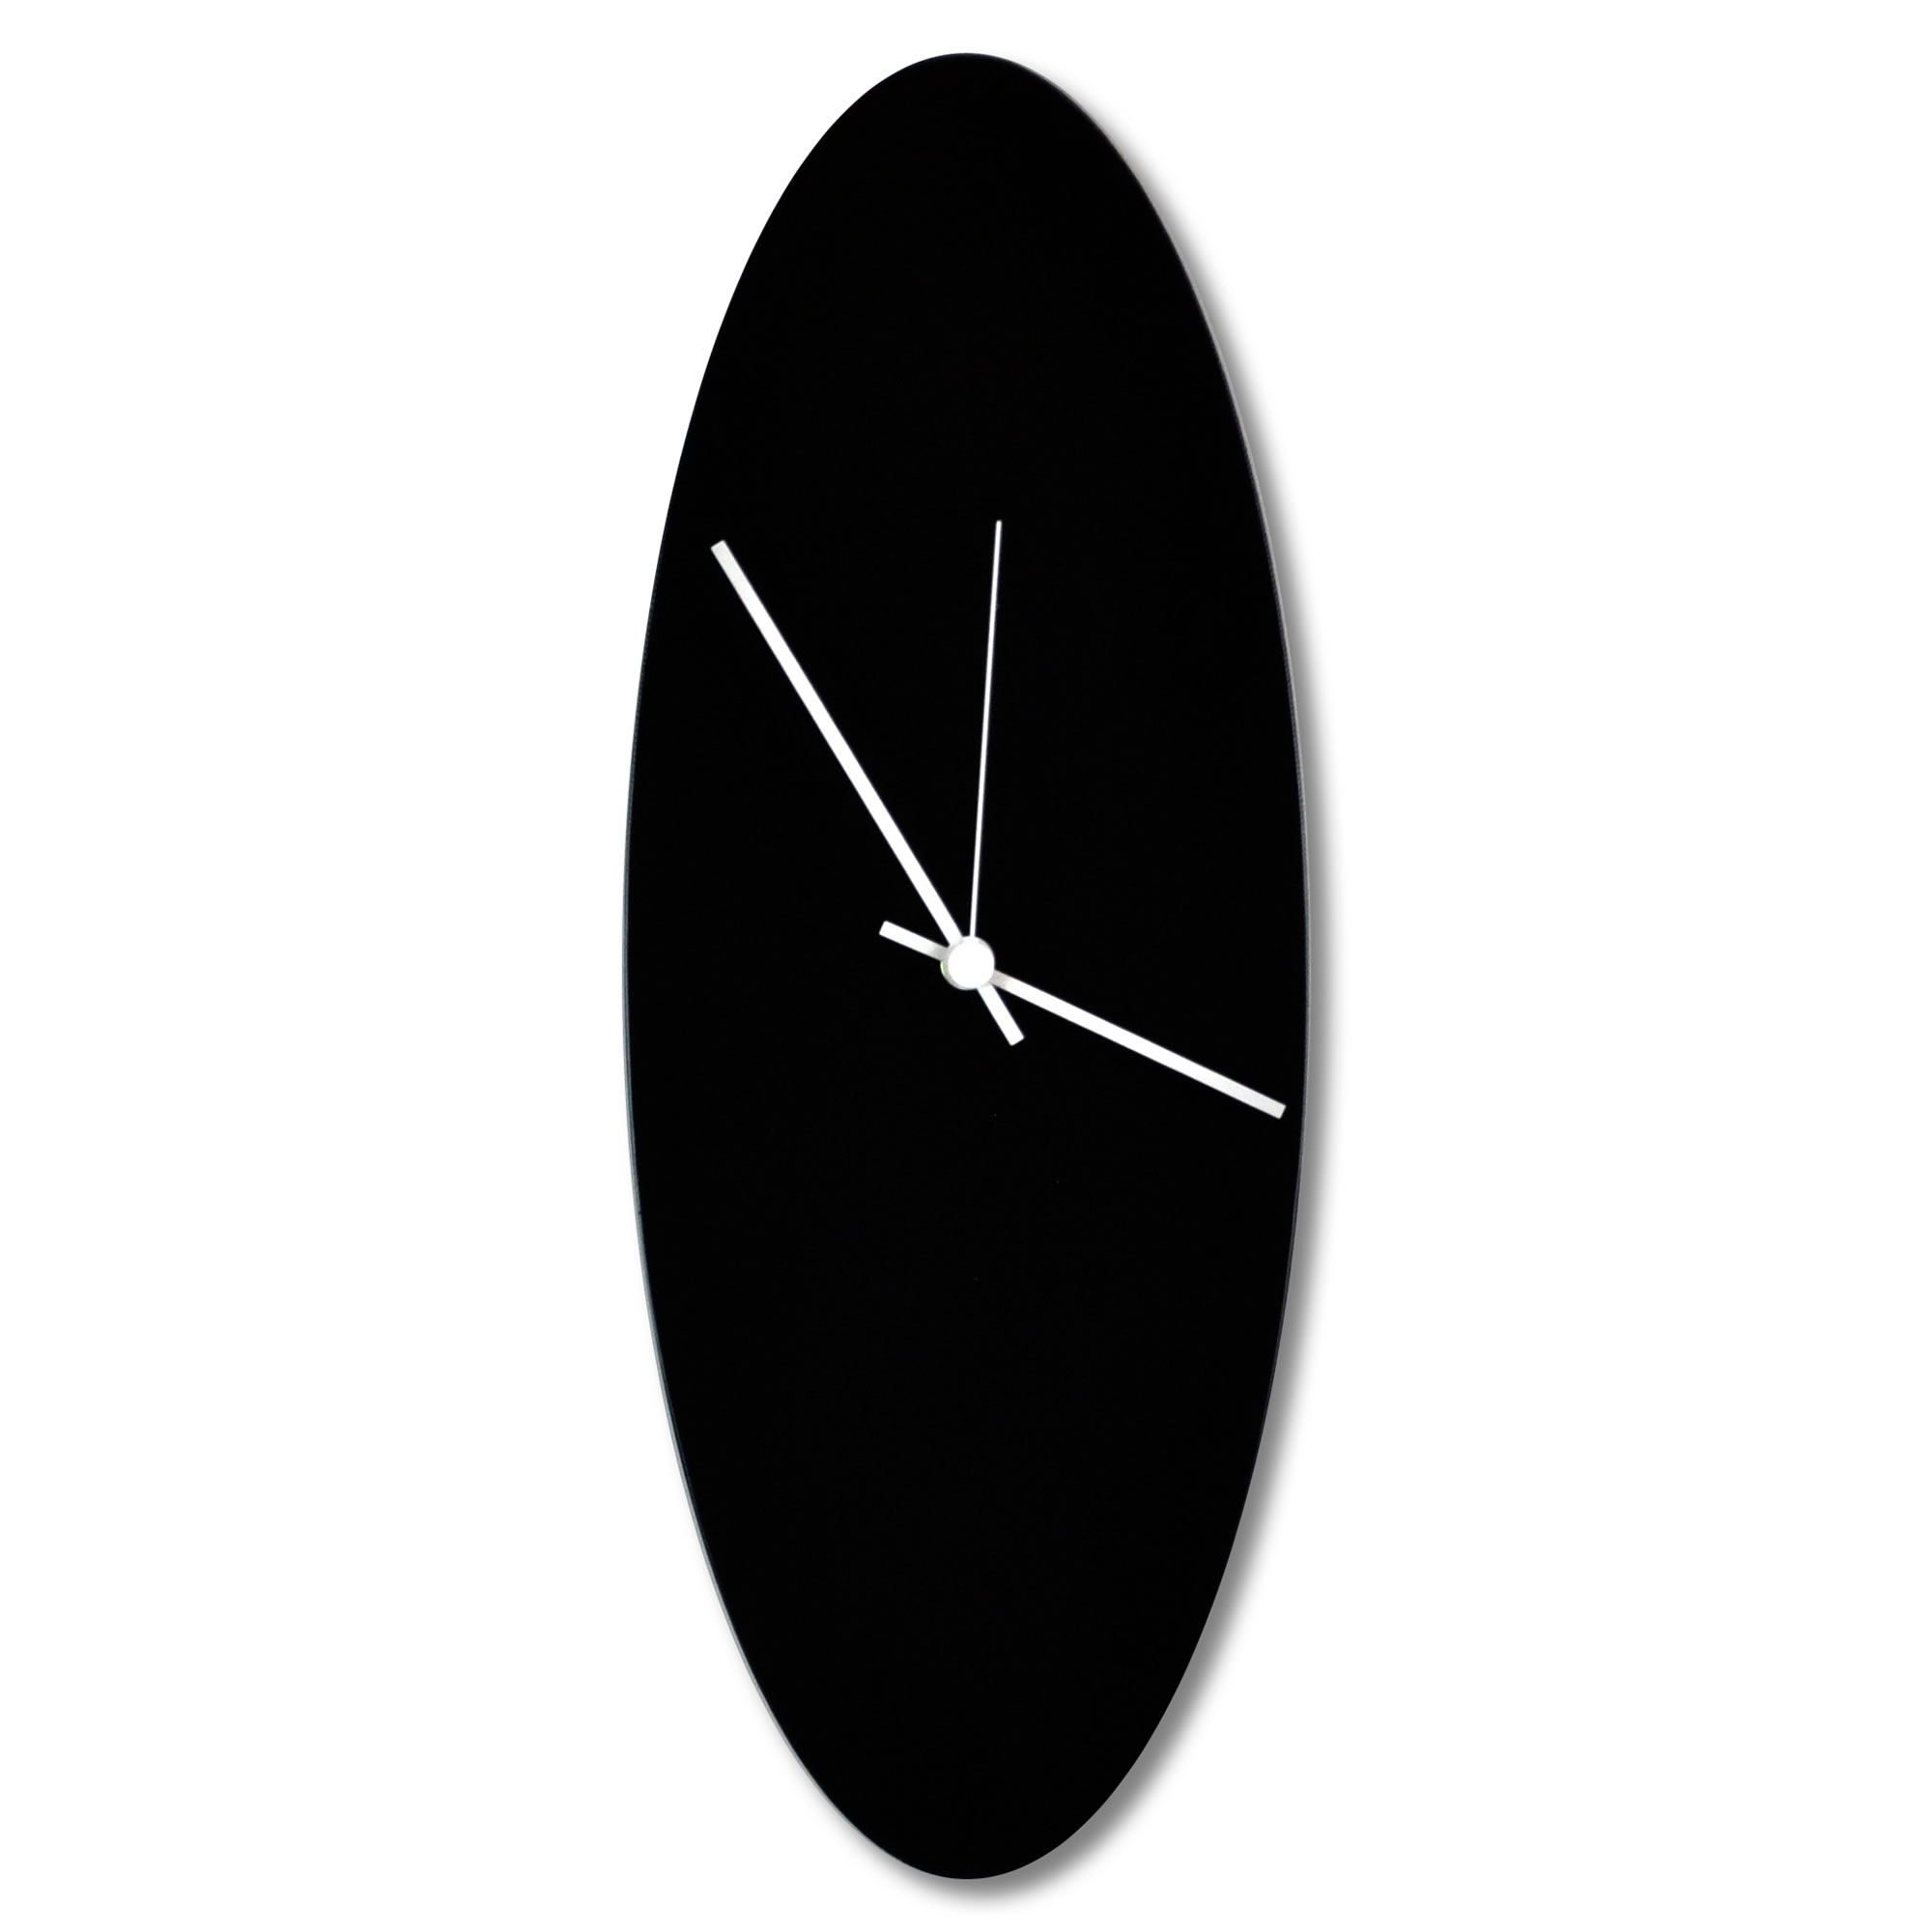 Blackout Ellipse Clock by Adam Schwoeppe - Minimalist Modern Black Metal Clock - Alternate View 1